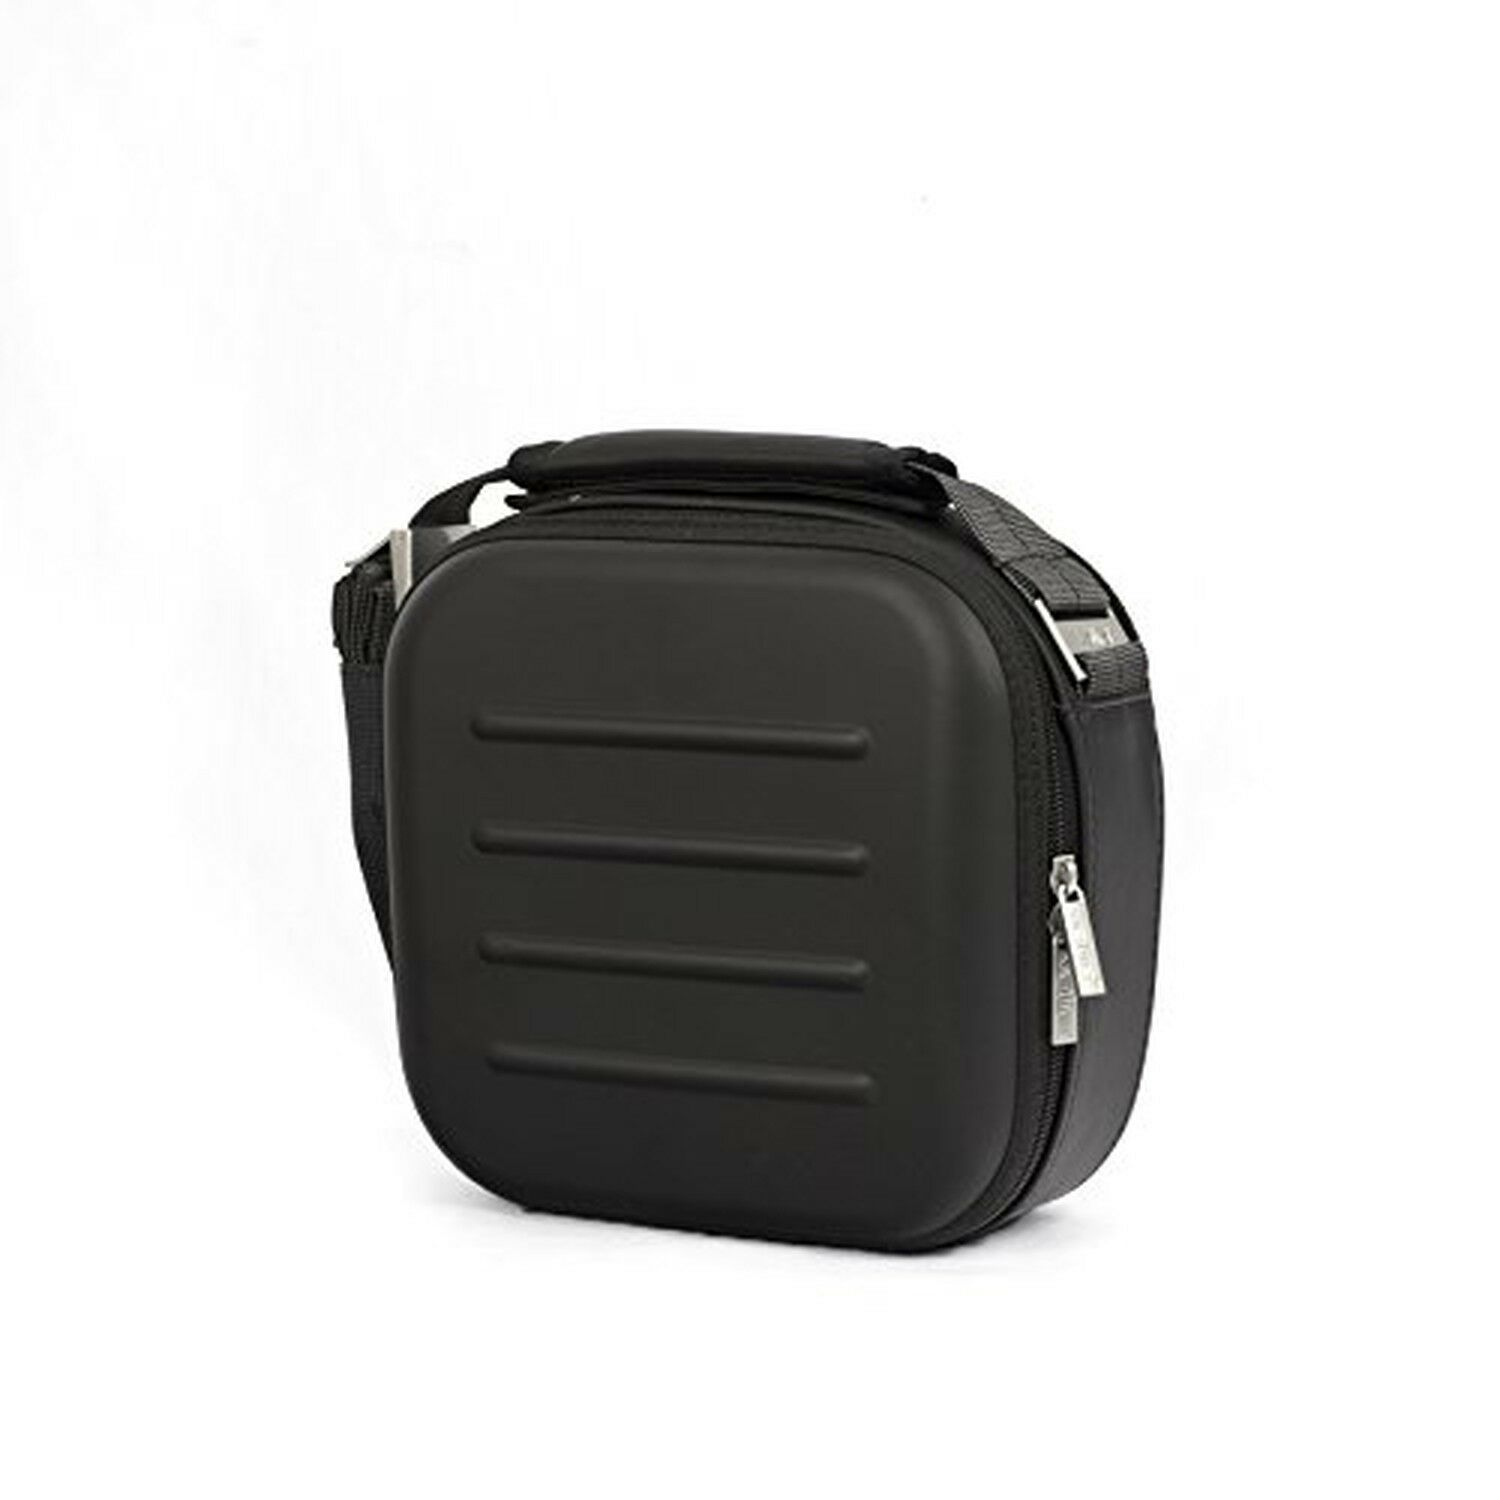 Valira Nomad Satin execuive lunch box maxi noir, tissu